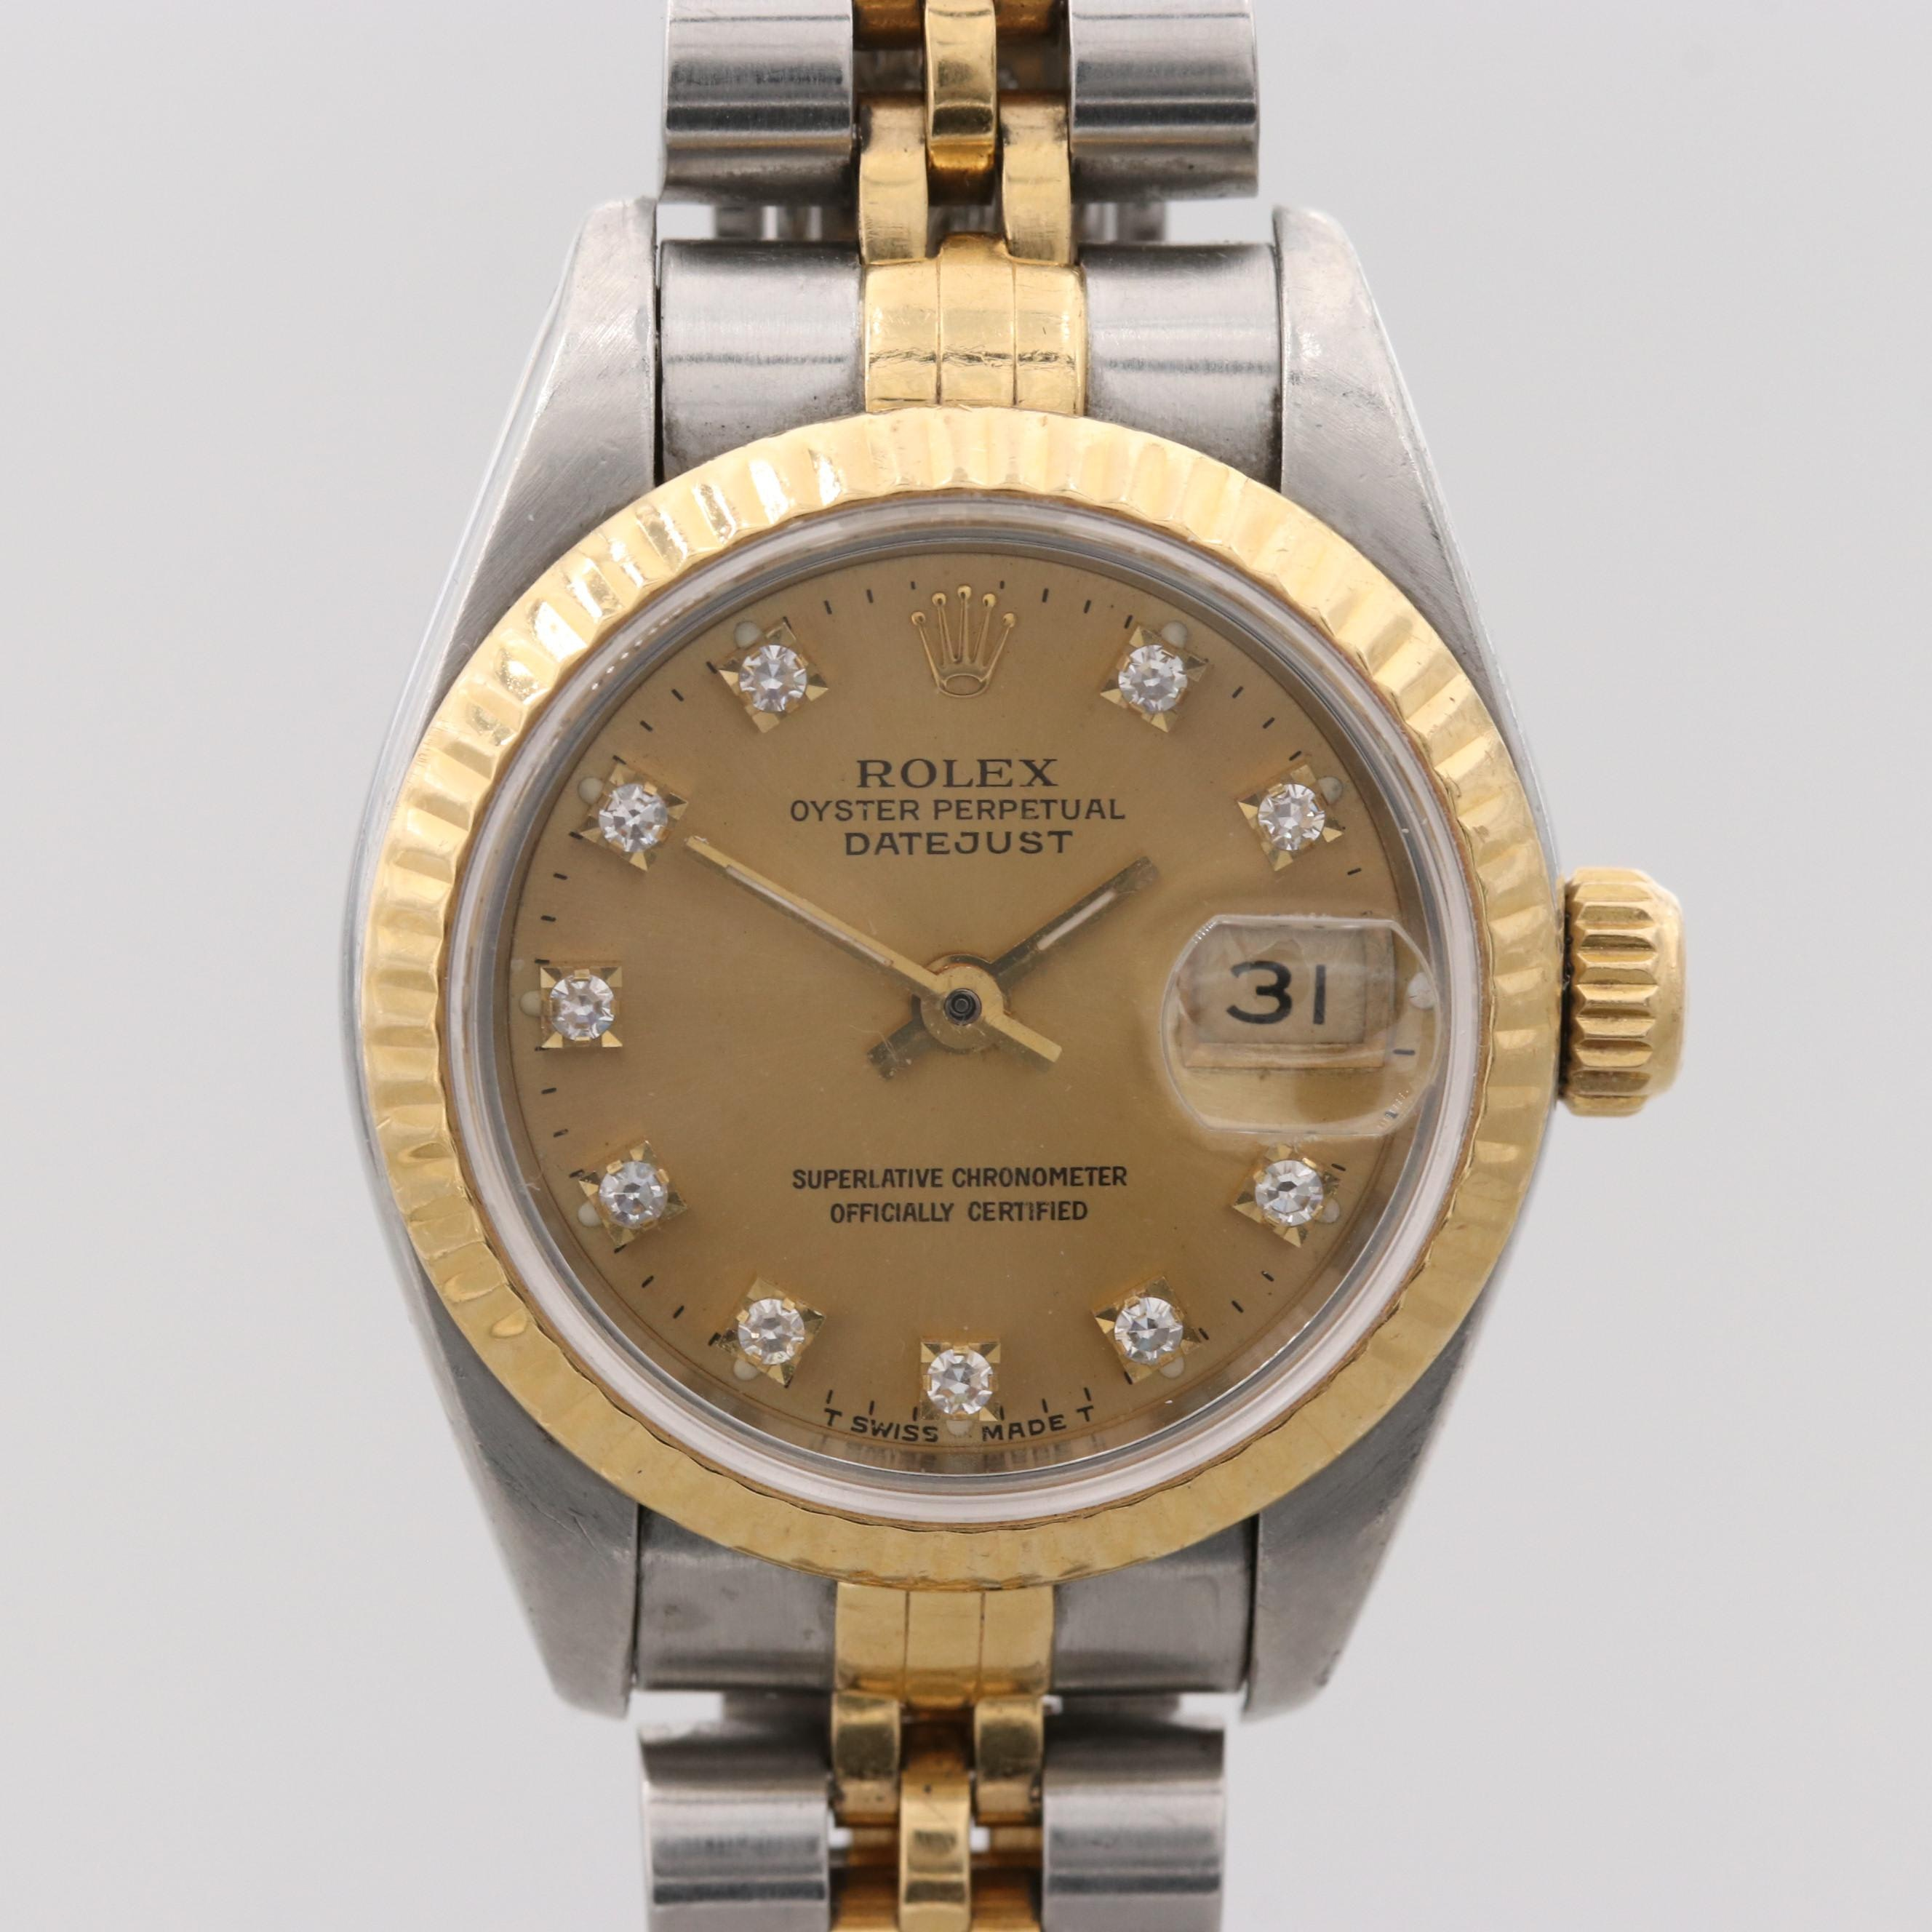 Rolex Datejust Stainless Steel and 18K Yellow Gold Wristwatch With Diamond Dial